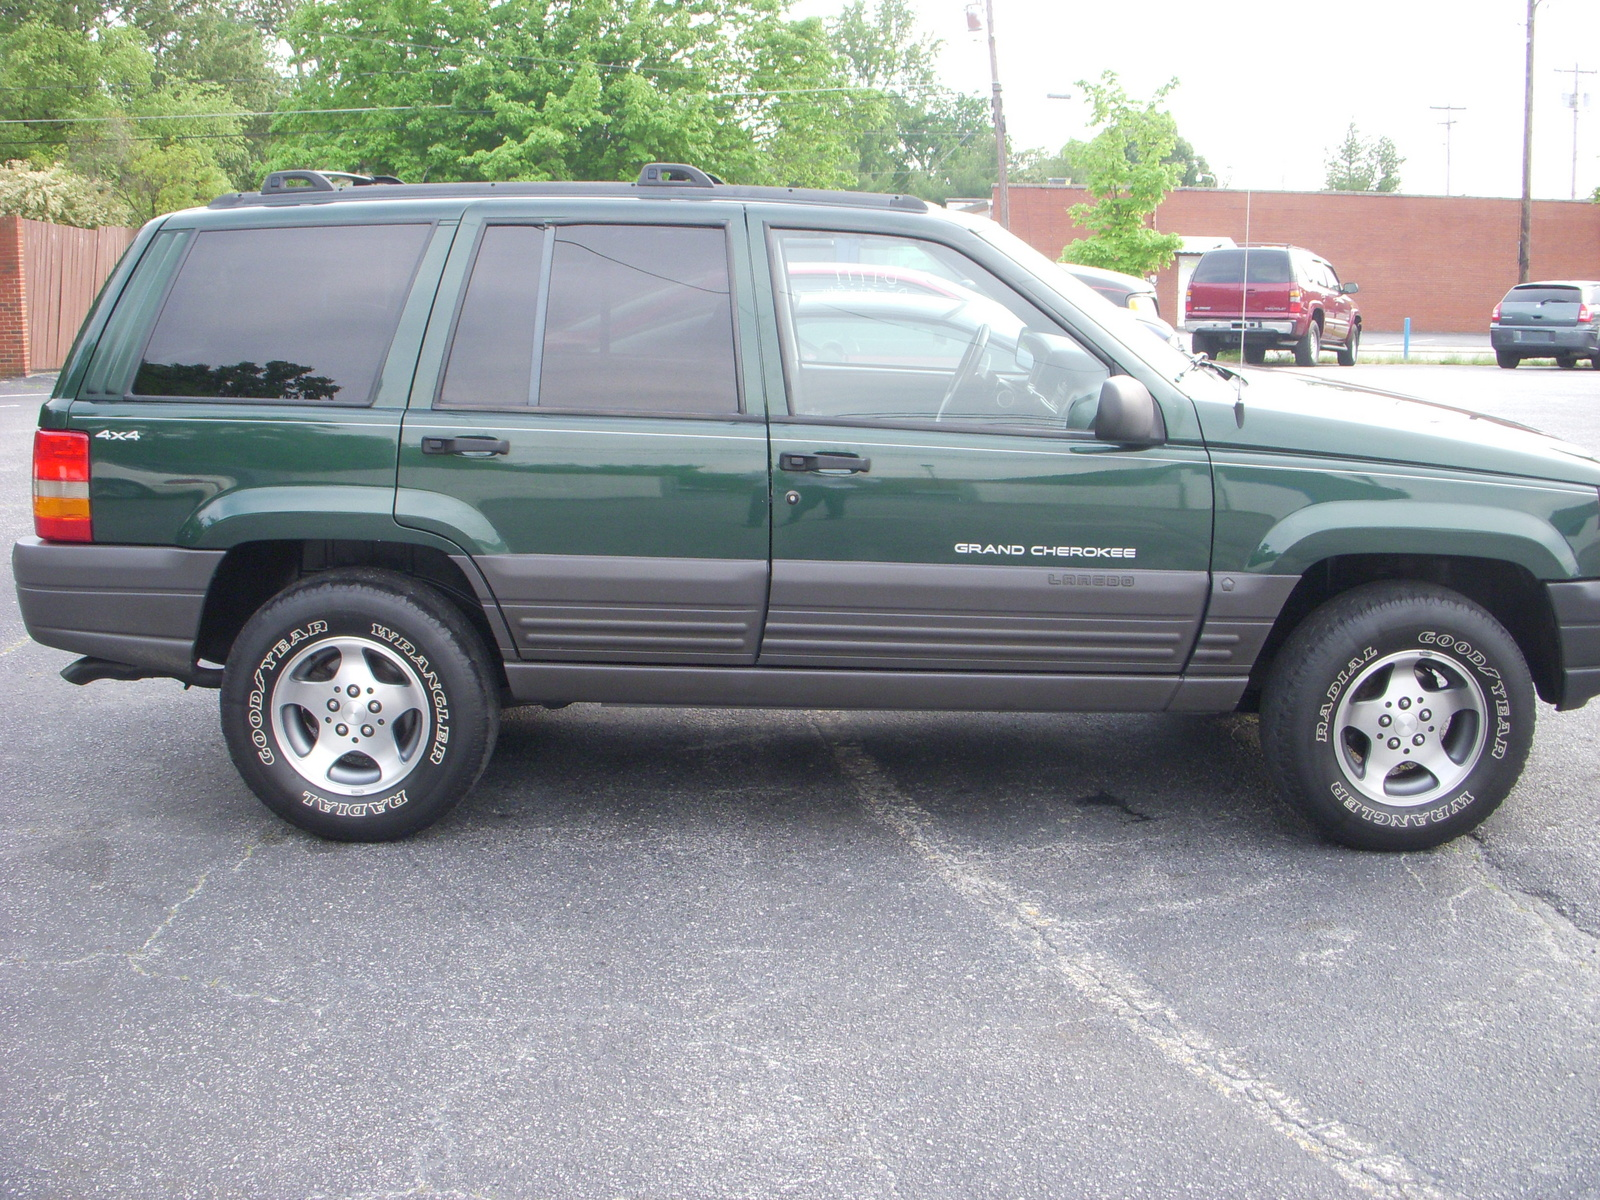 1998 jeep grand cherokee laredo 4wd picture of 1998 jeep grand. Cars Review. Best American Auto & Cars Review